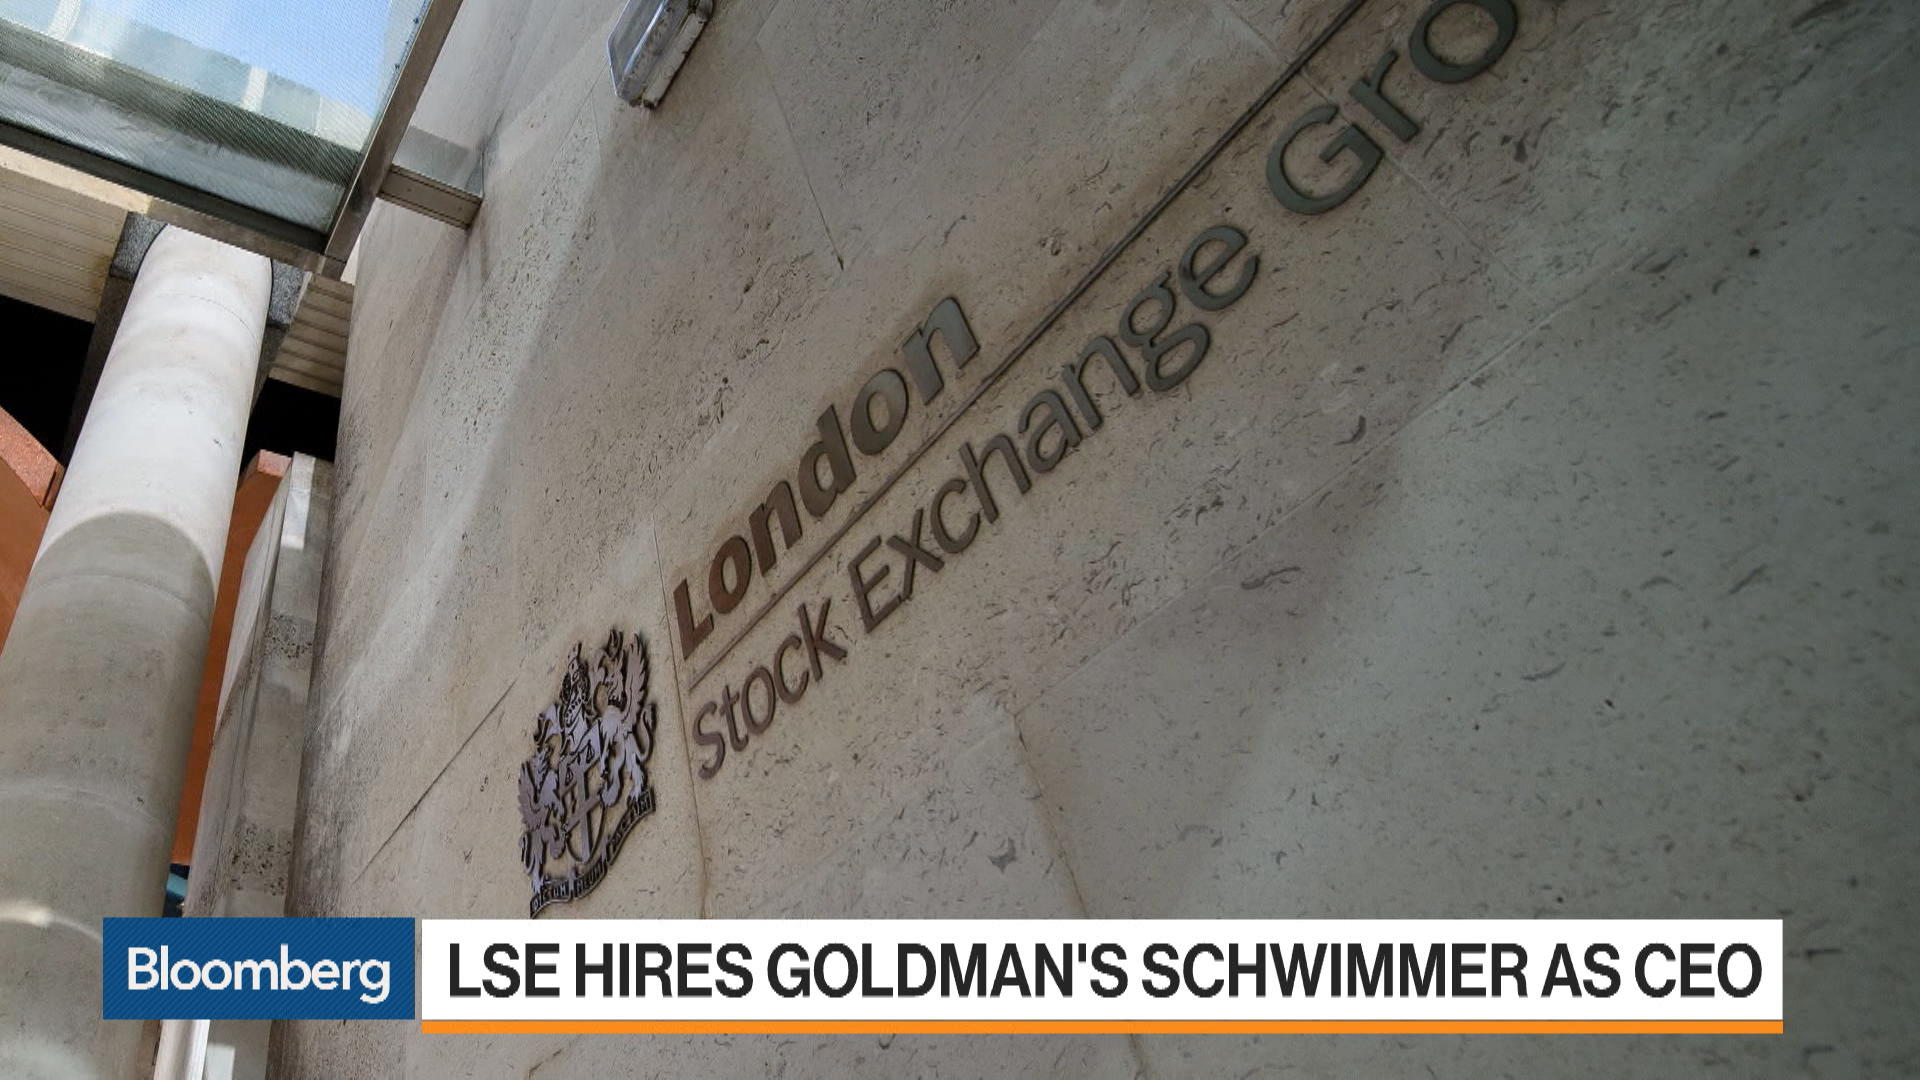 LSE Hires Goldman's Schwimmer as CEO, Ending Long Search